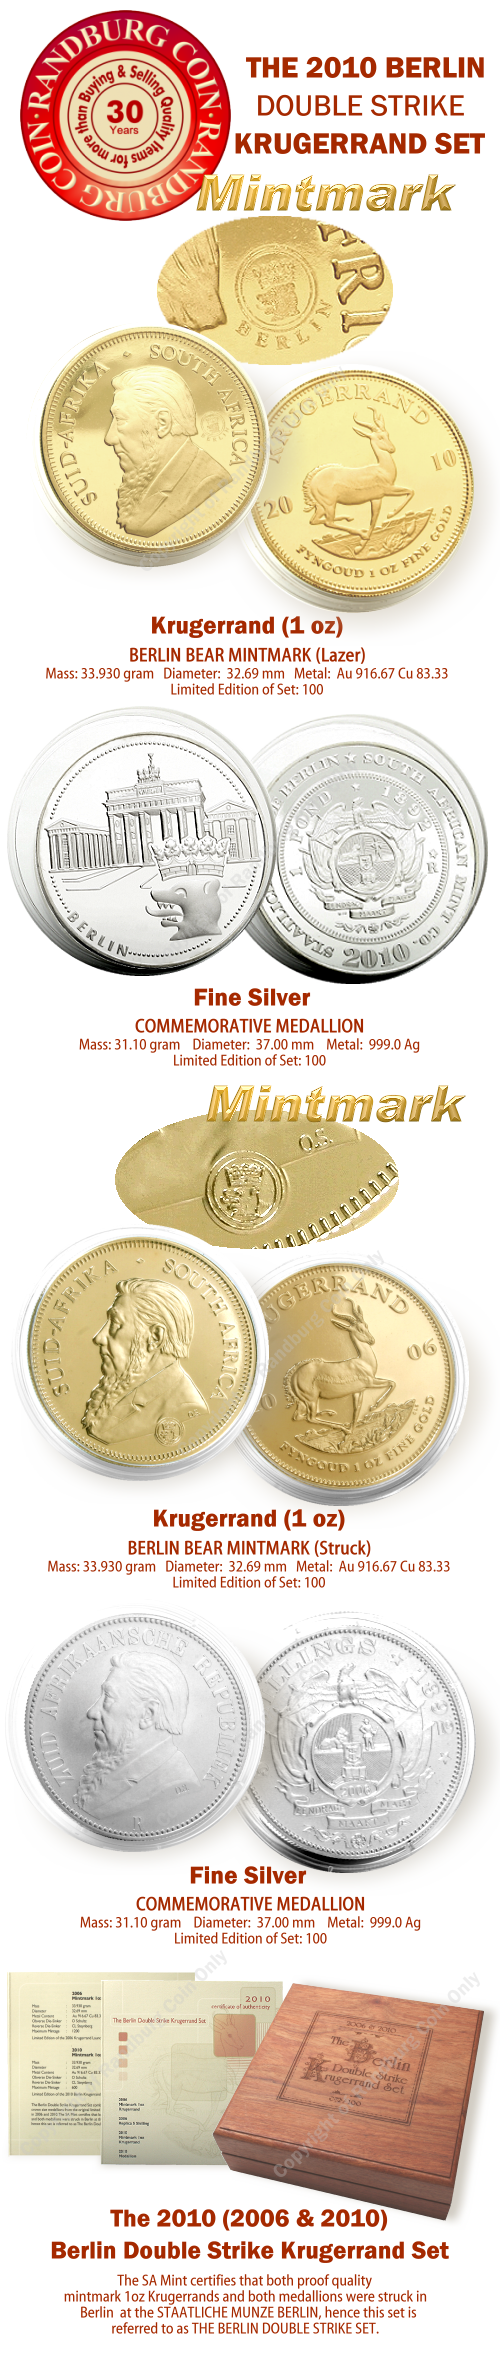 2010_Proof_1_oz_Krugerrands_plus_Silver_Medallions_Berlin_Double_Strike_Set_mintmark_coins